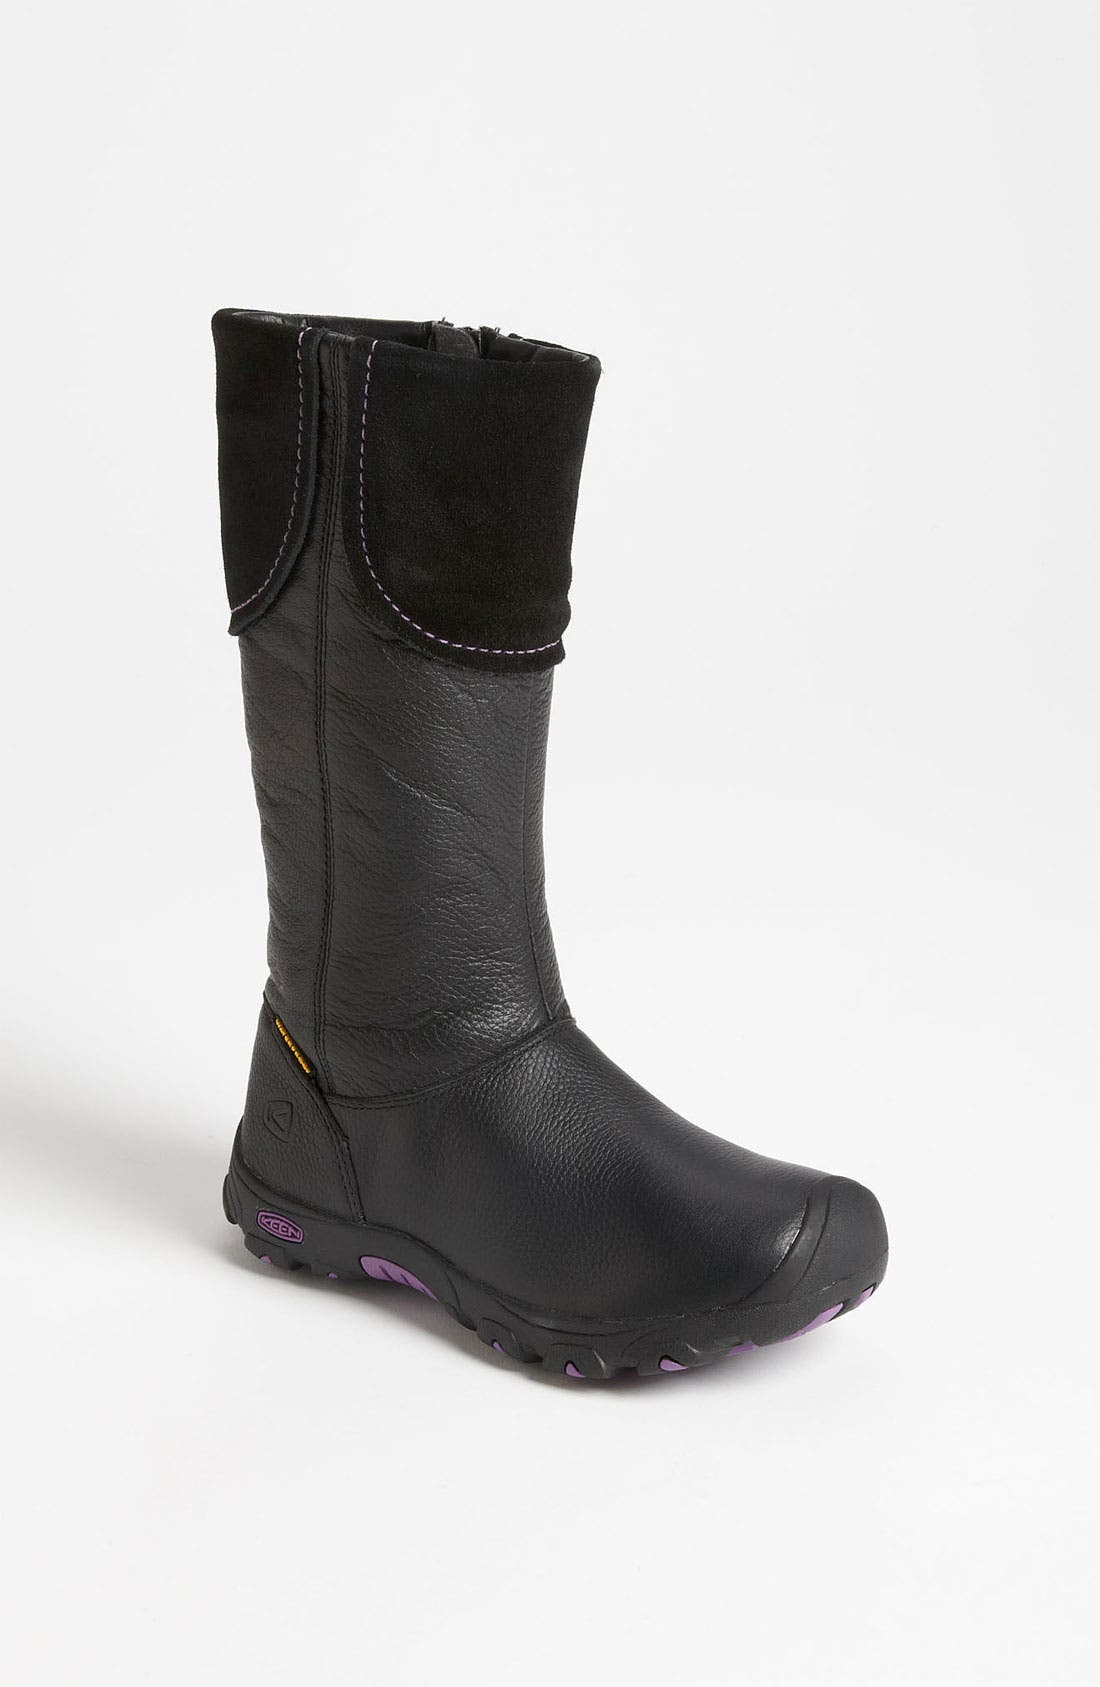 Alternate Image 1 Selected - Keen 'Laken' Boot (Toddler, Little Kid & Big Kid)